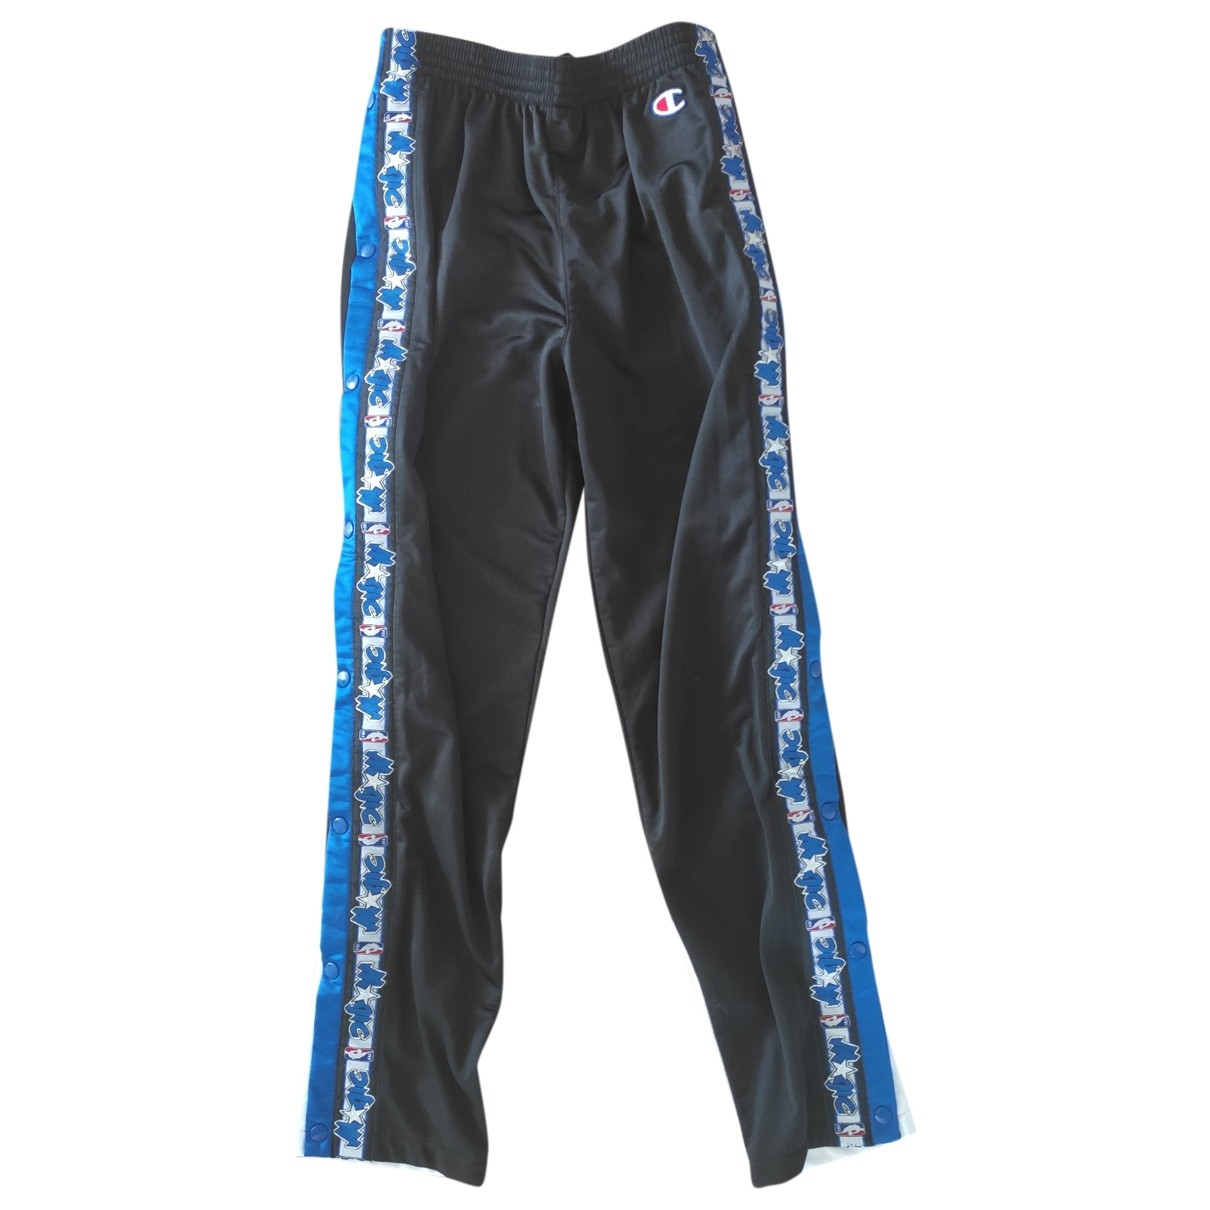 Champion \N Trousers for Men L International